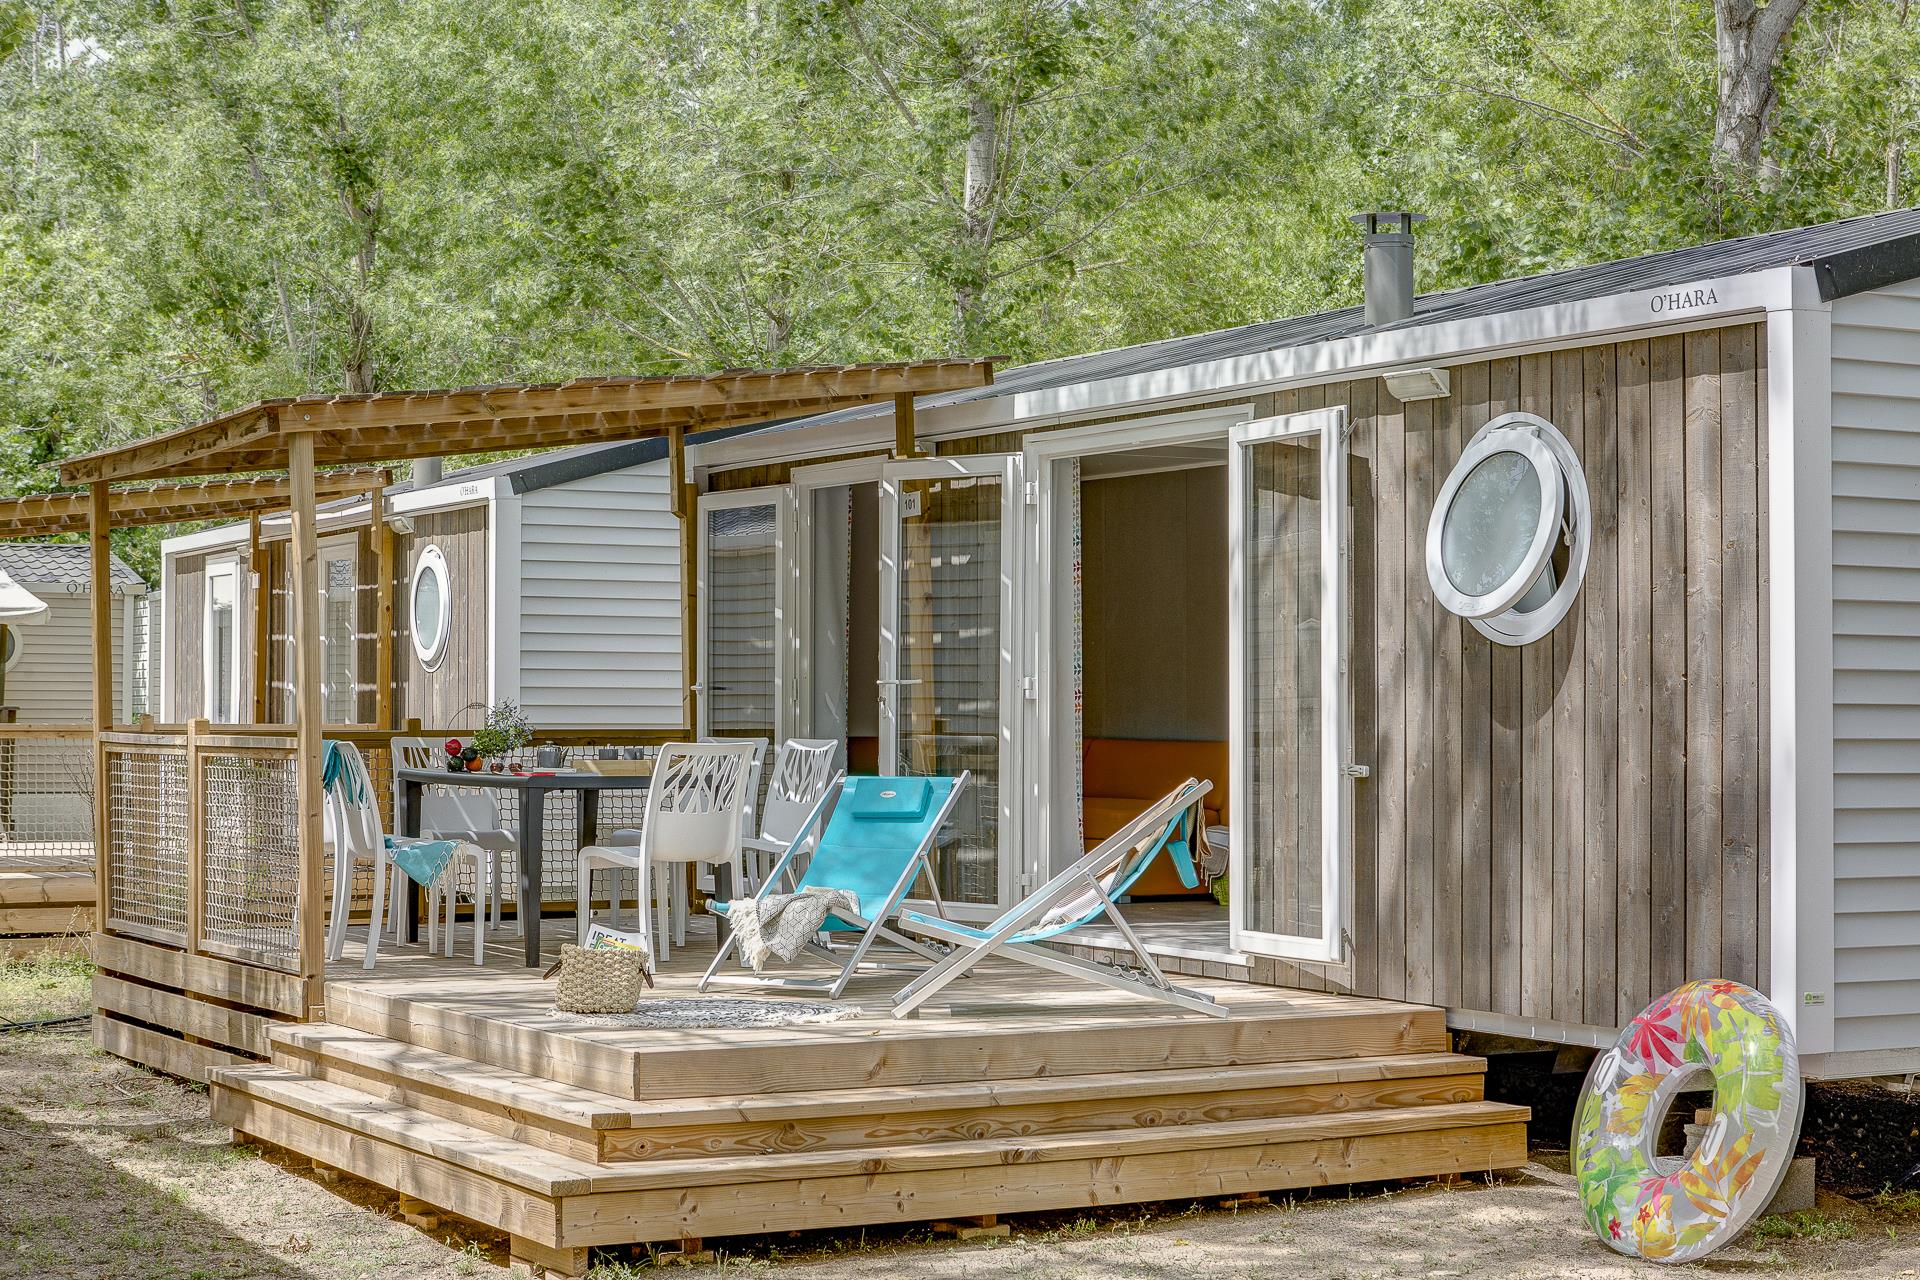 Locatifs - Cottage 2 Chambres Climatisé*** - Sandaya Camping Blue Bayou